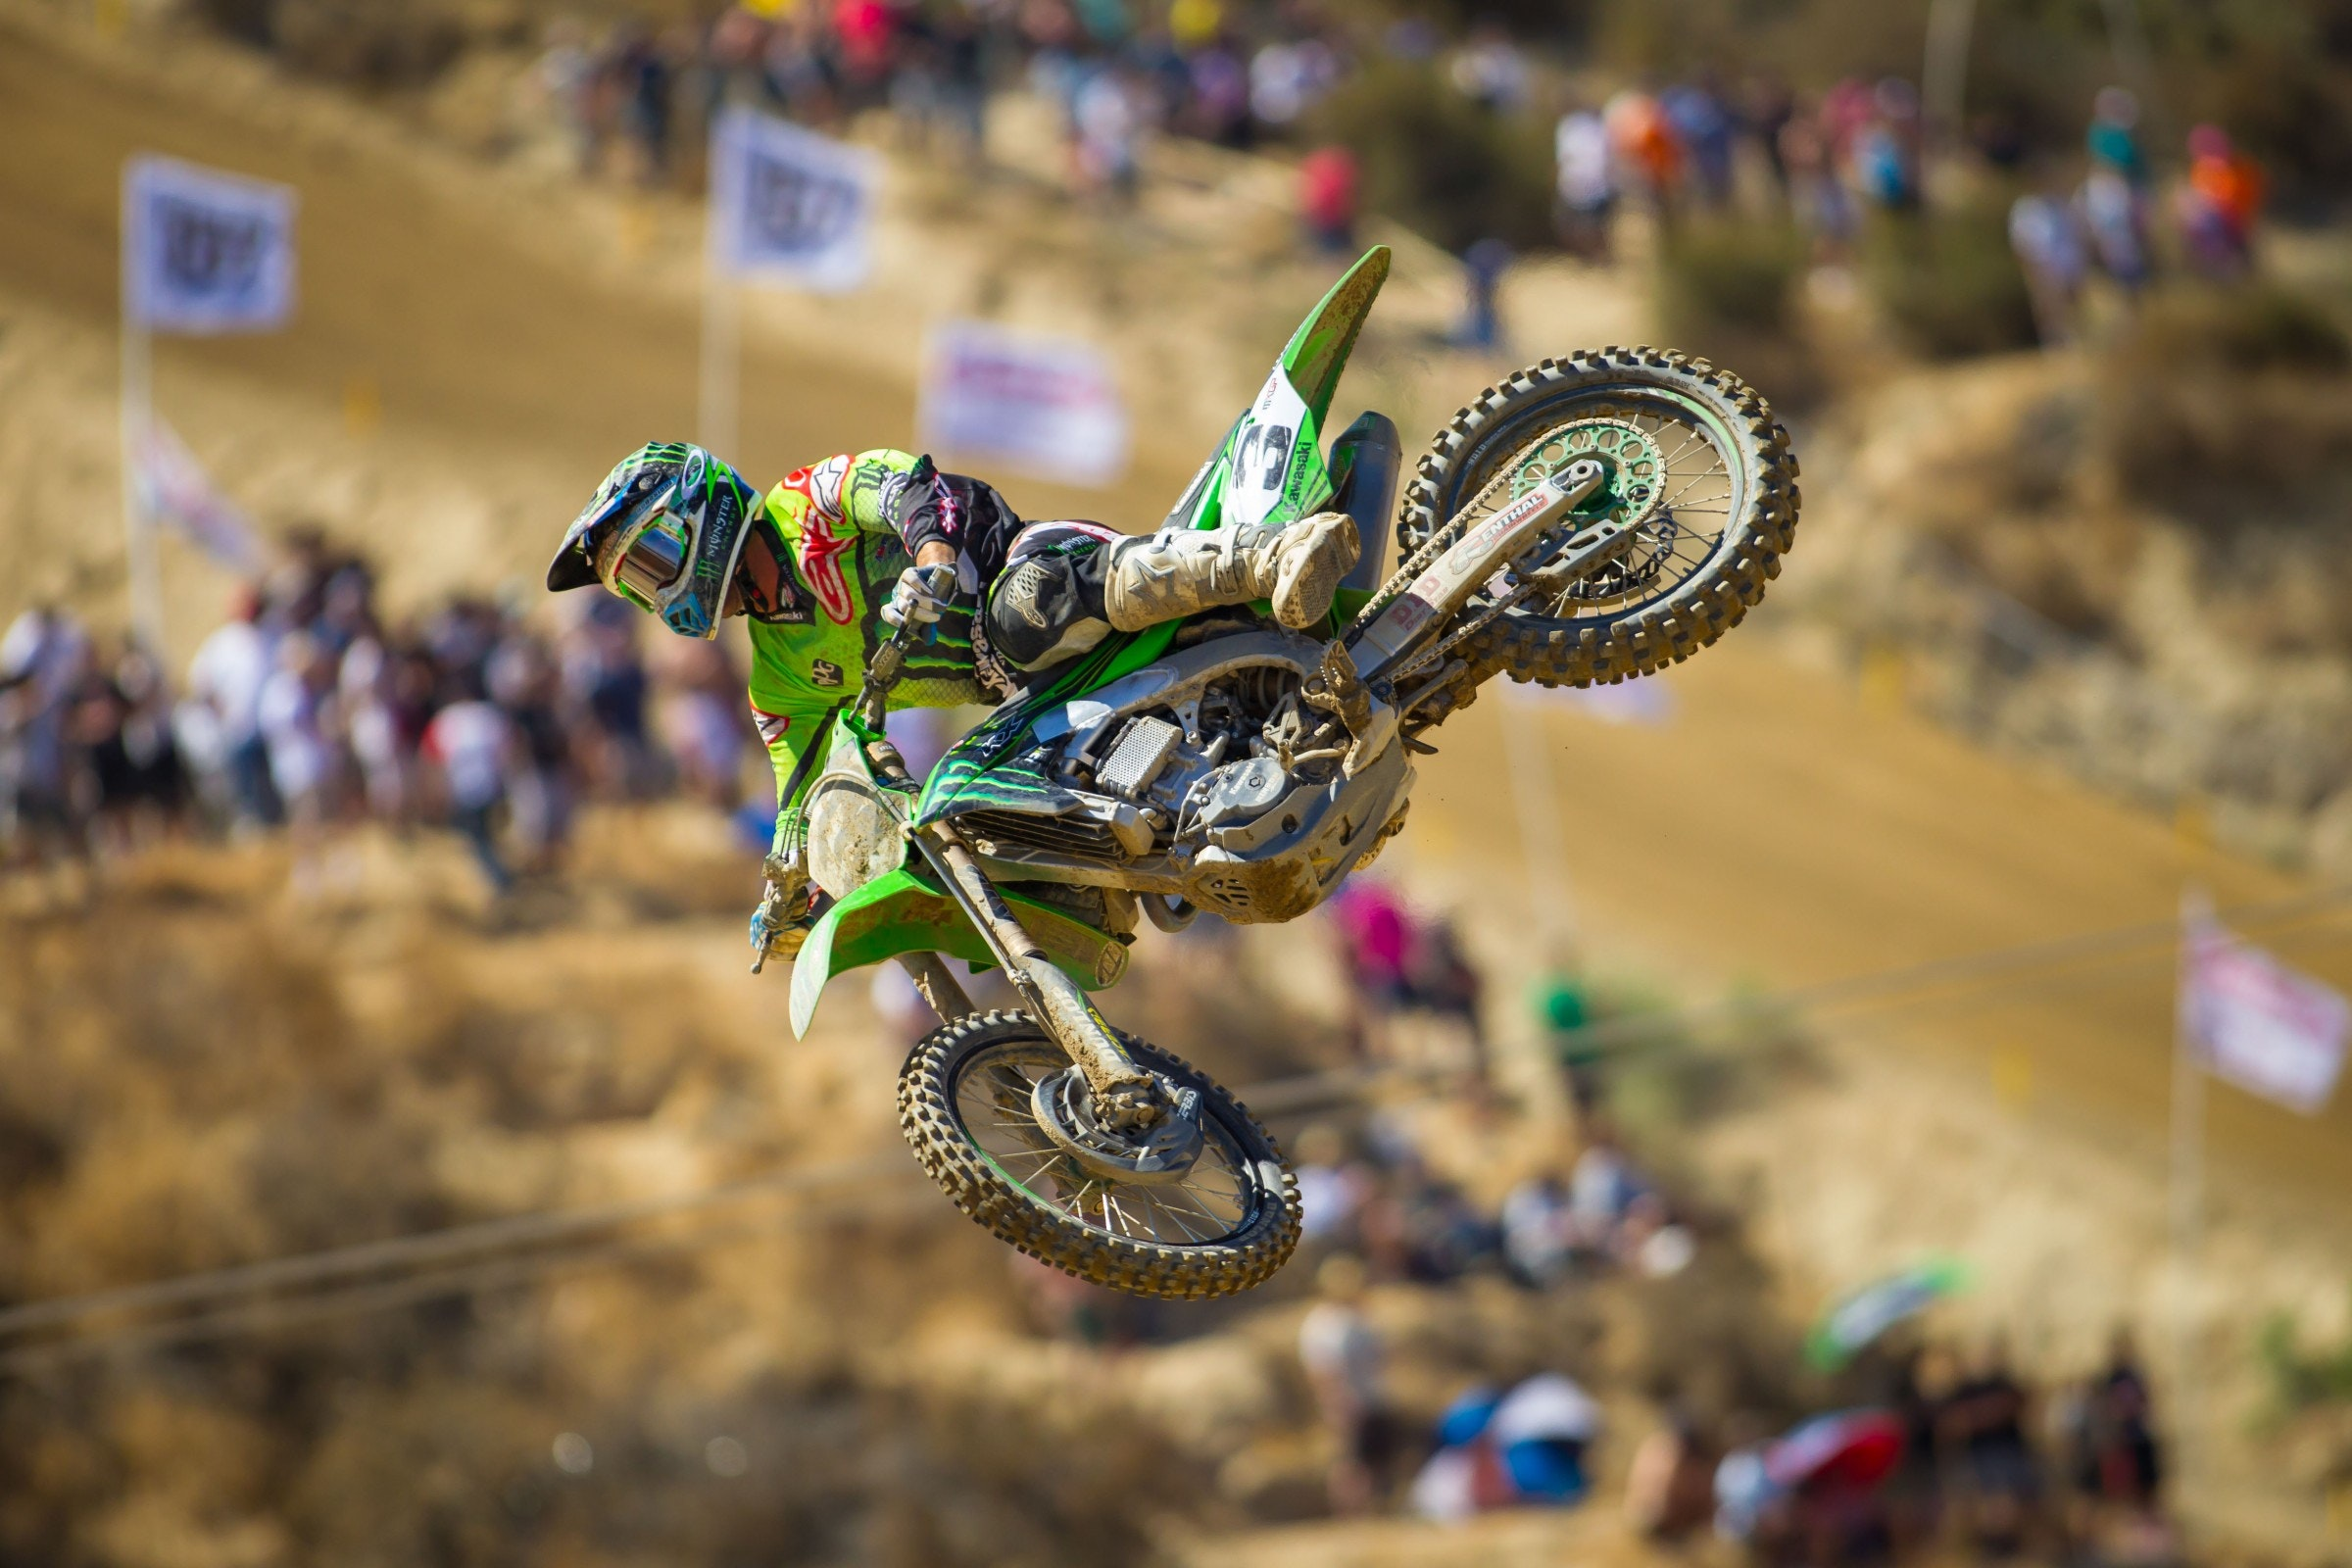 Can Tomac keep hismomentum going from his dominating performances at the USGPs?